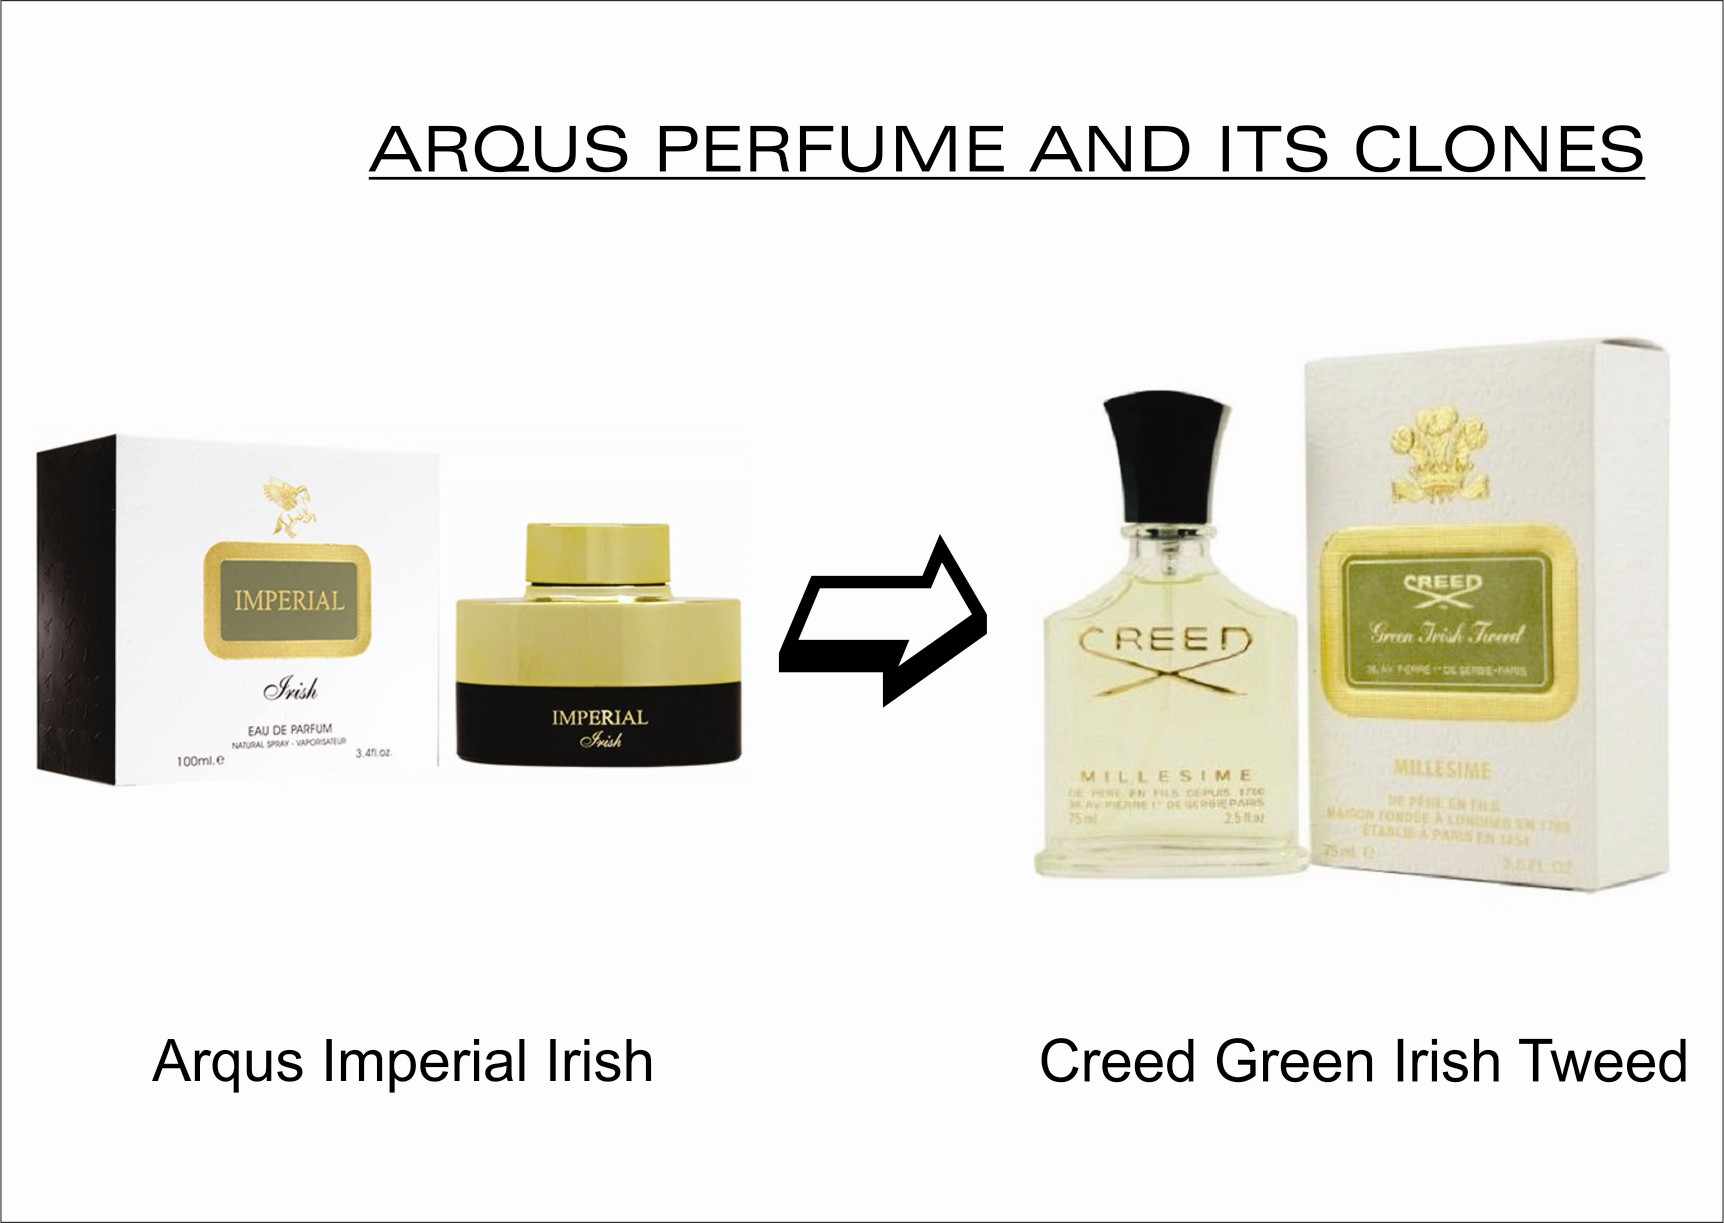 arqus-imperial-irish-perfume-for-women-100-ml-edp-by-lattafa-perfumes-creed-green-irish-tweed